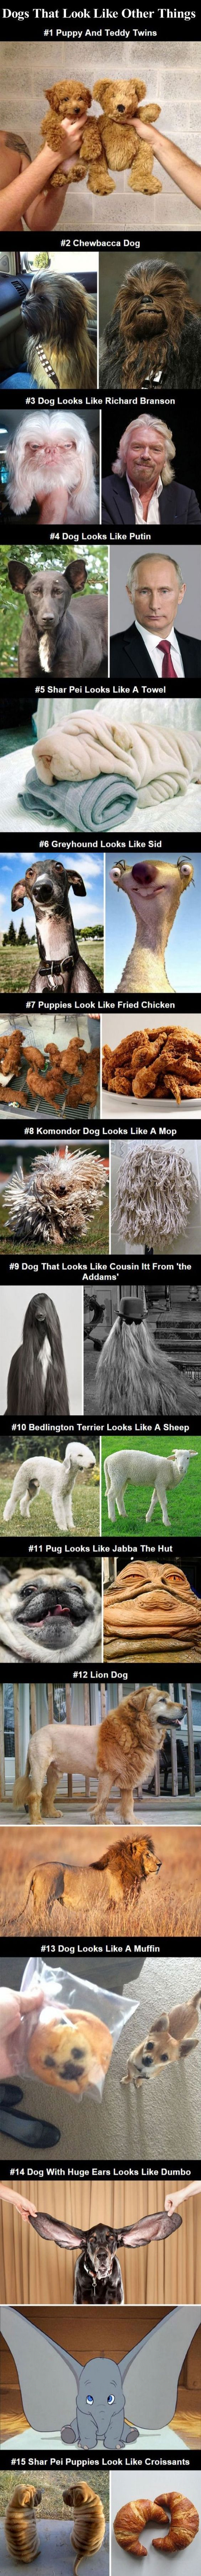 Funny picture of Dogs that look like other things – Toonts